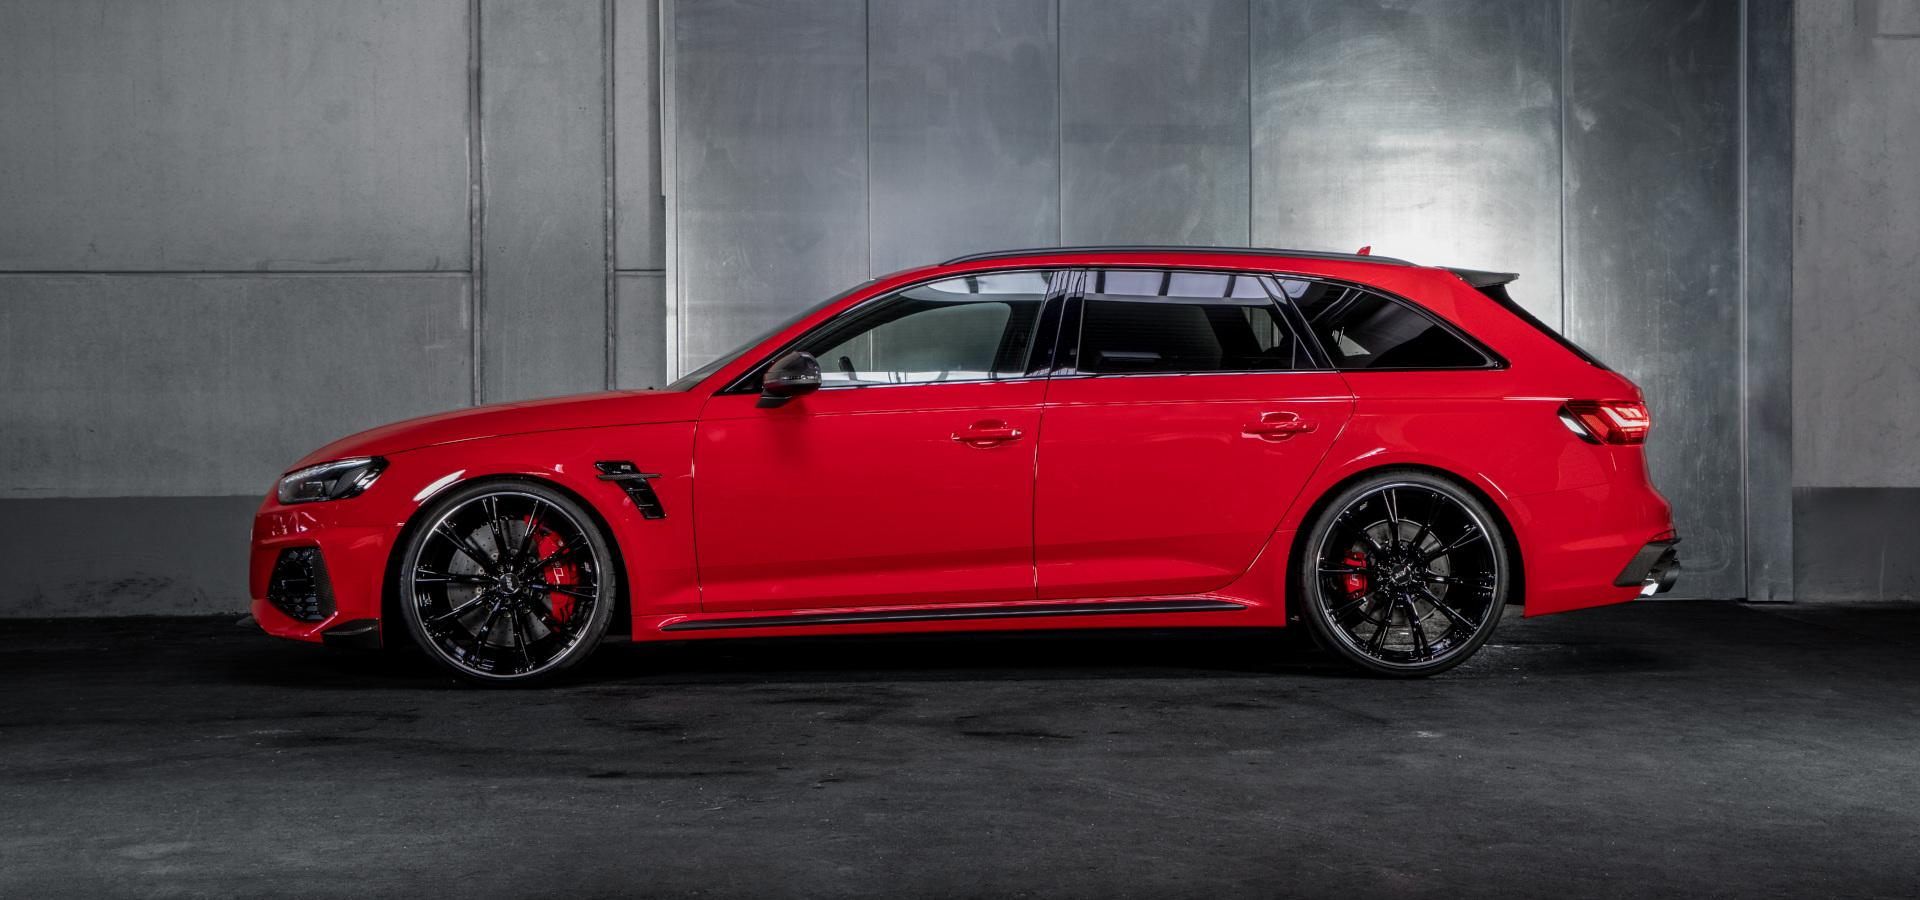 ABT-Tuning_RS4-S_GR-21_Seite.jpg